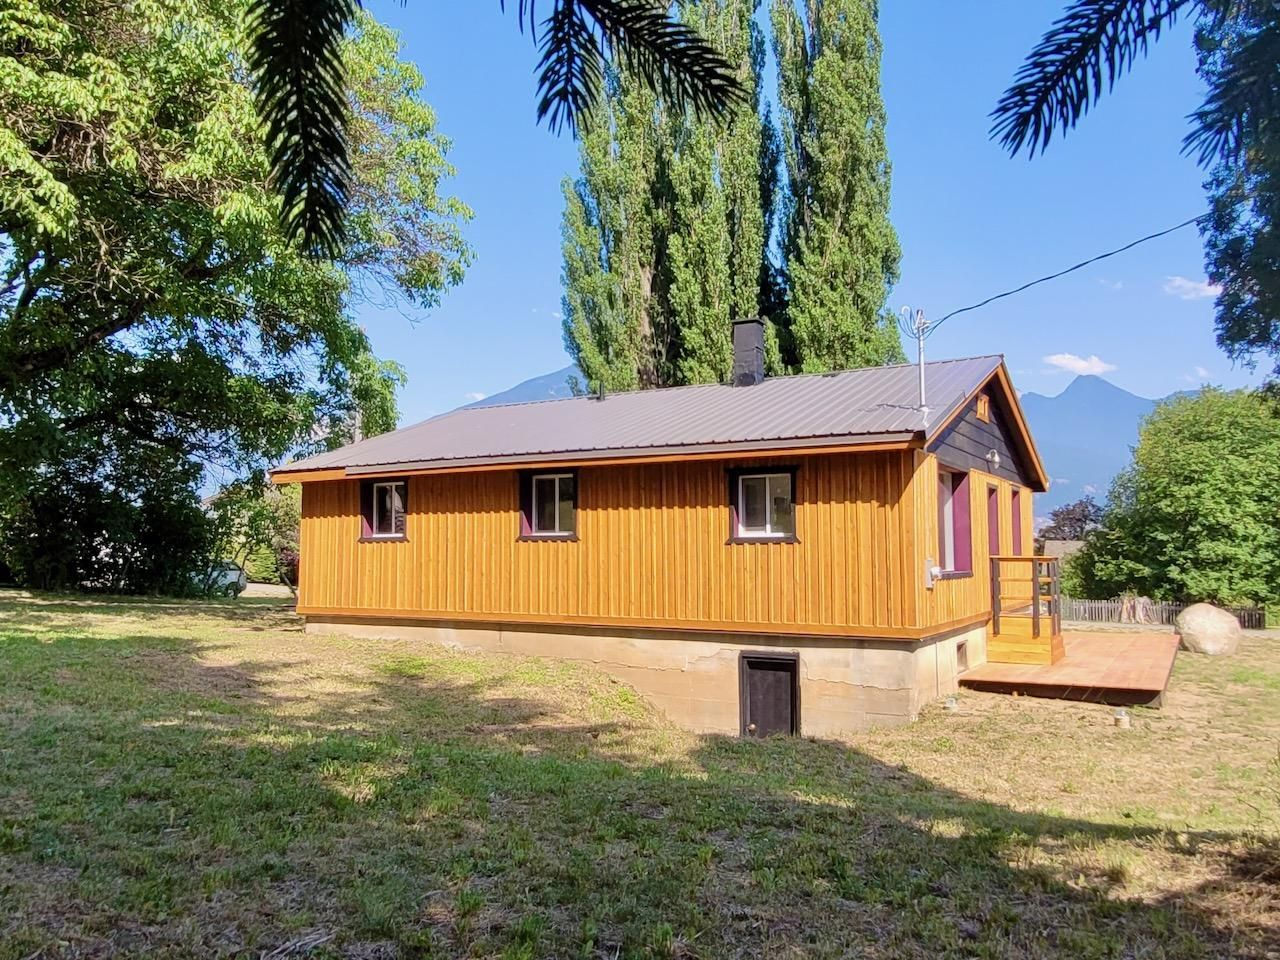 Main Photo: 439 VIEW STREET in Kaslo: House for sale : MLS®# 2460032